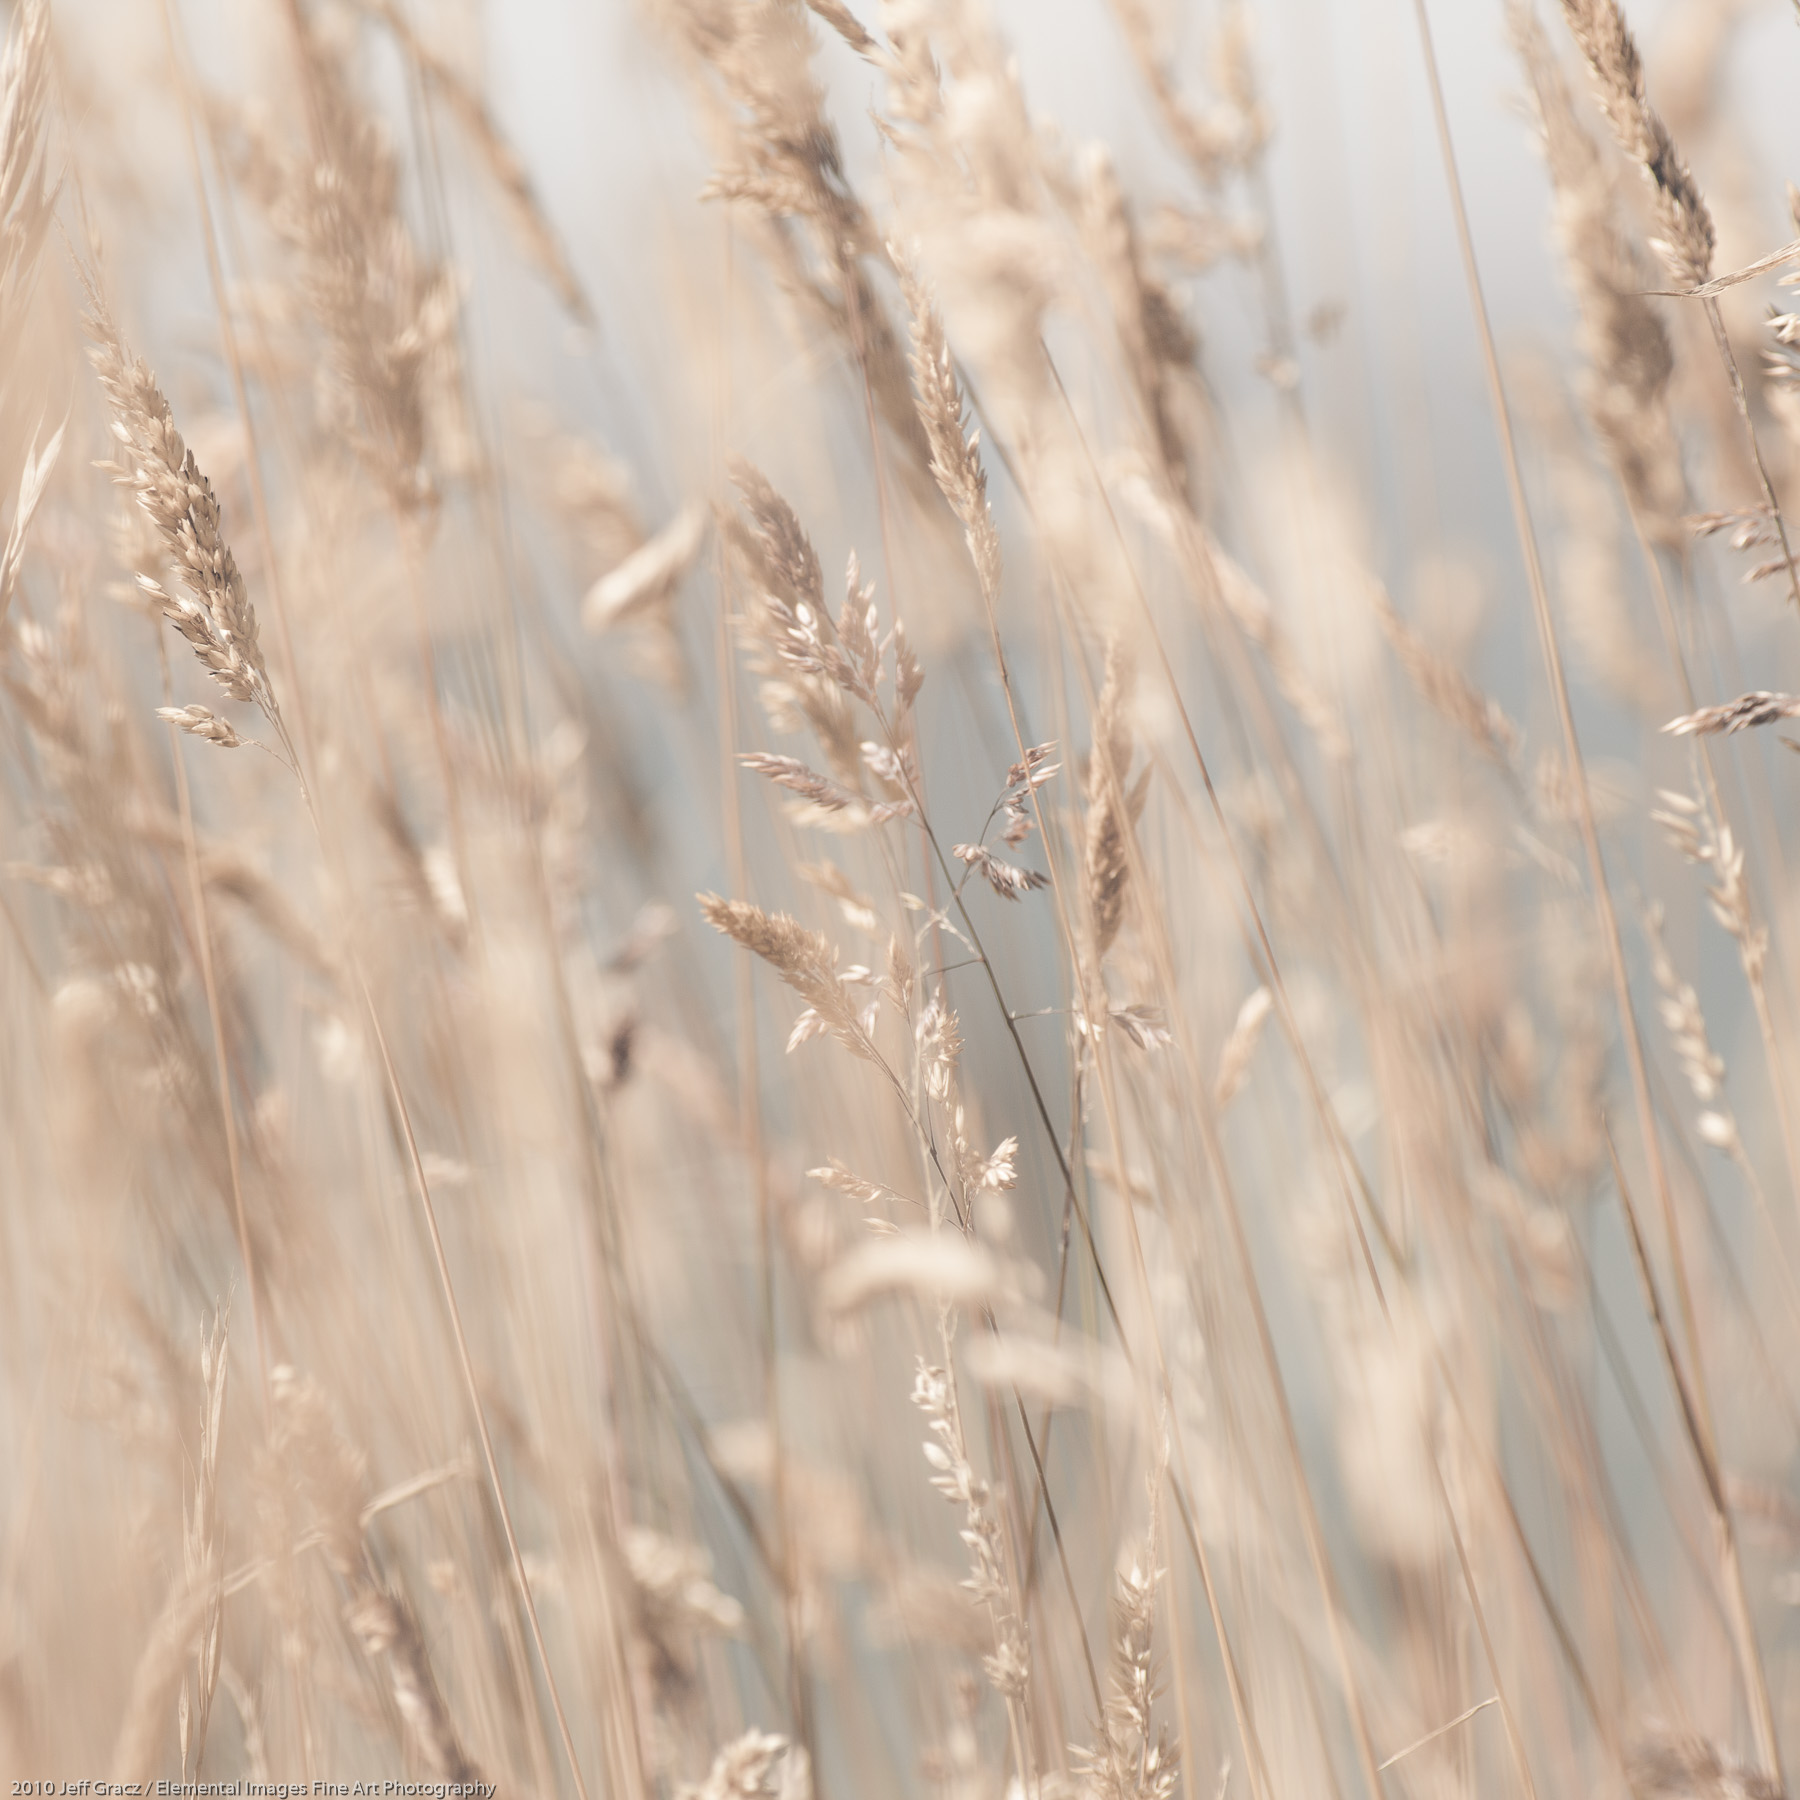 Grasses XCVIII |  |  |  - © 2010 Jeff Gracz / Elemental Images Fine Art Photography - All Rights Reserved Worldwide